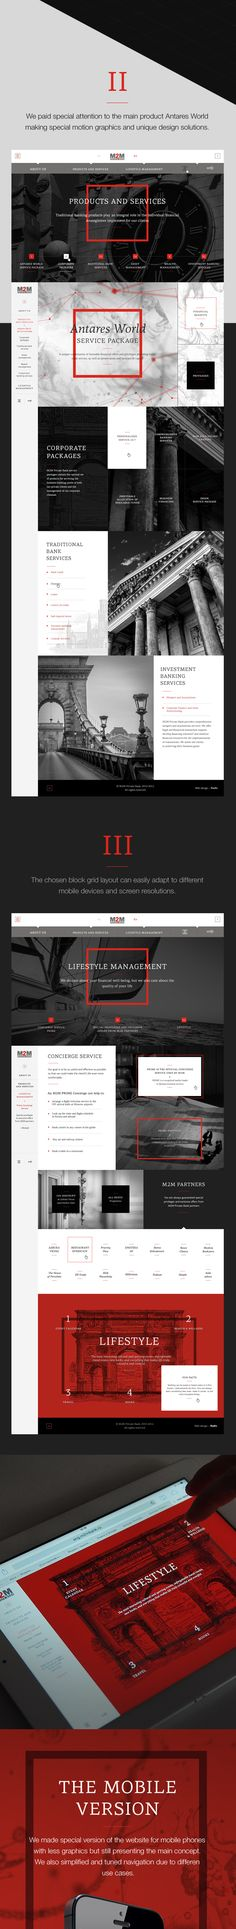 M2M Private Bank by Pavel Dergachev, via Behance